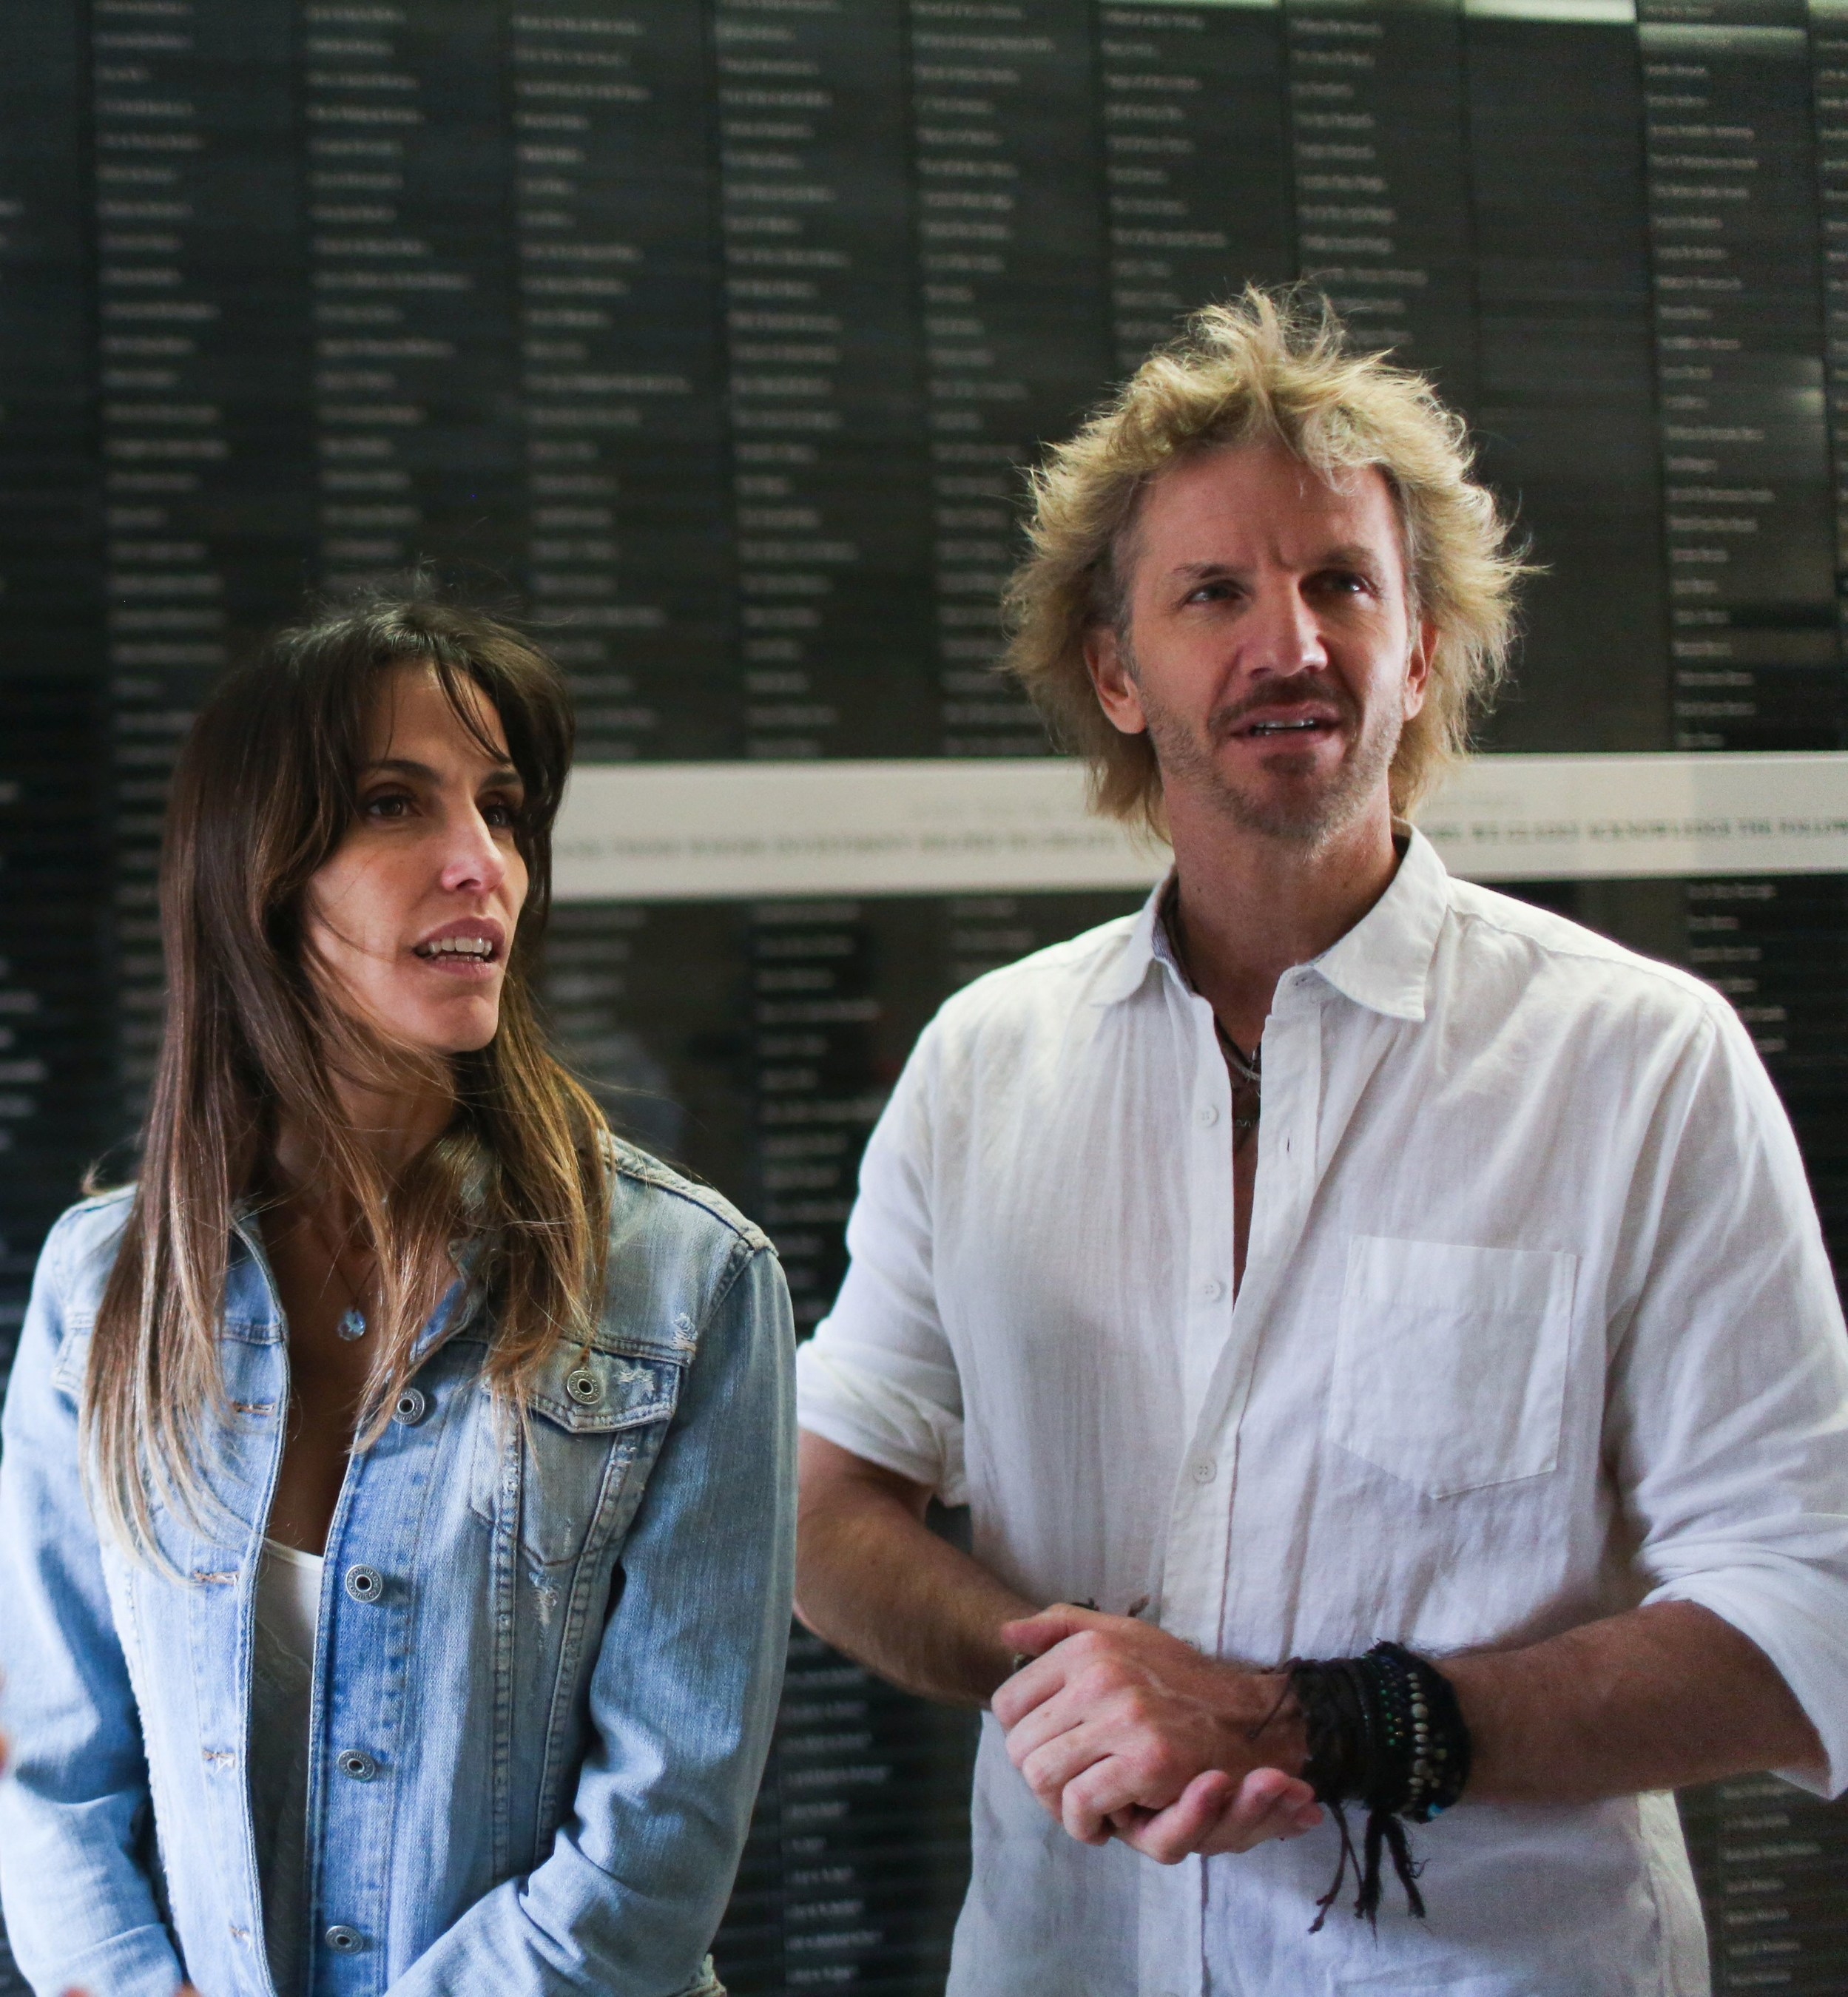 Pop and TV Star Facundo Arana Visits the Friends of Zion Museum in Jerusalem